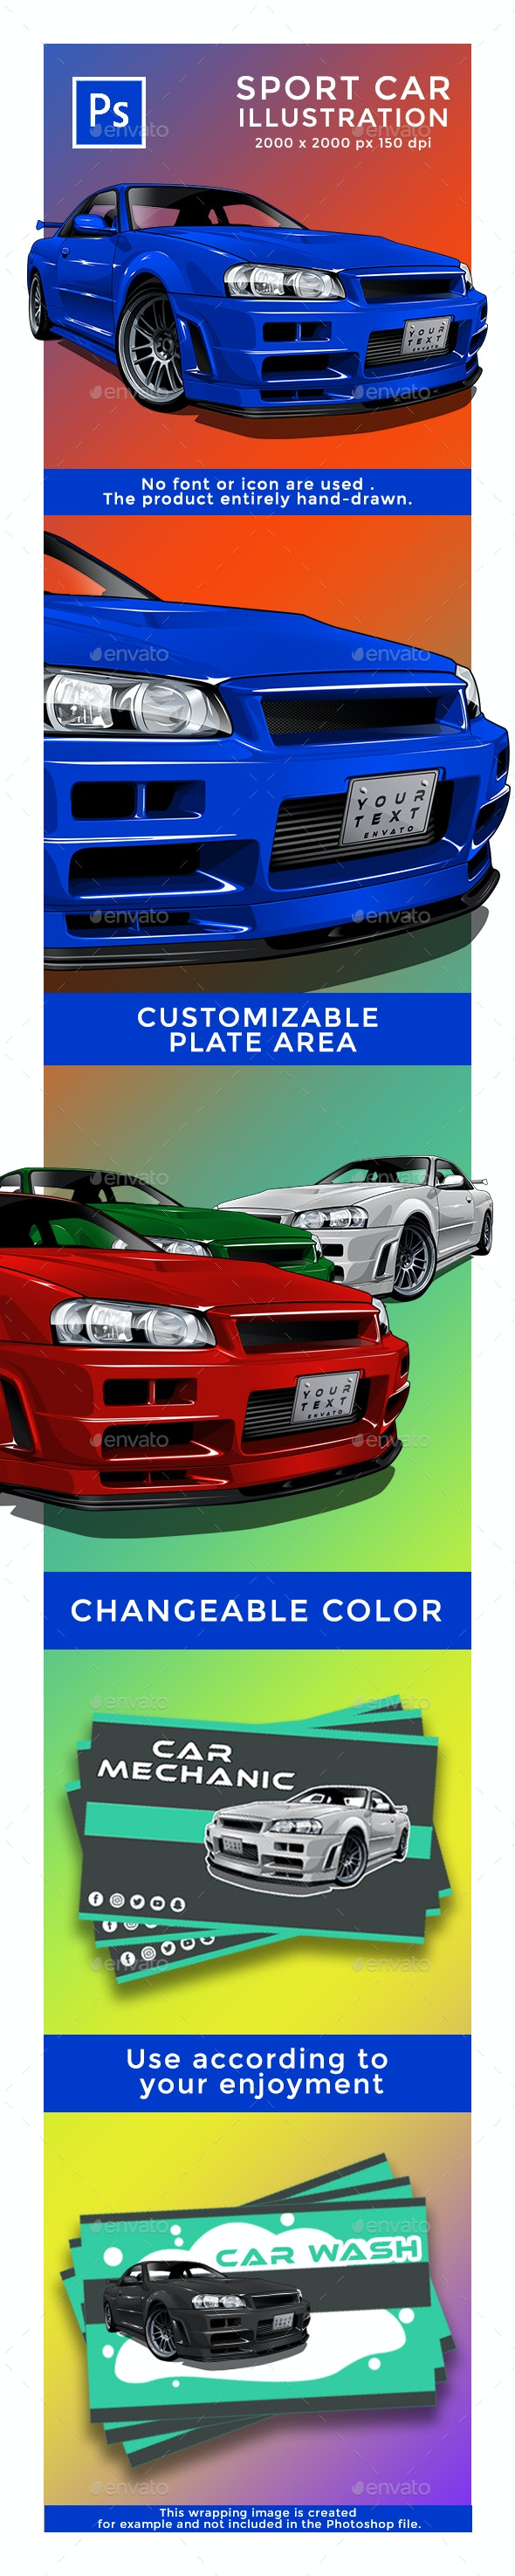 GTR Sport Car Illustration - Objects Illustrations